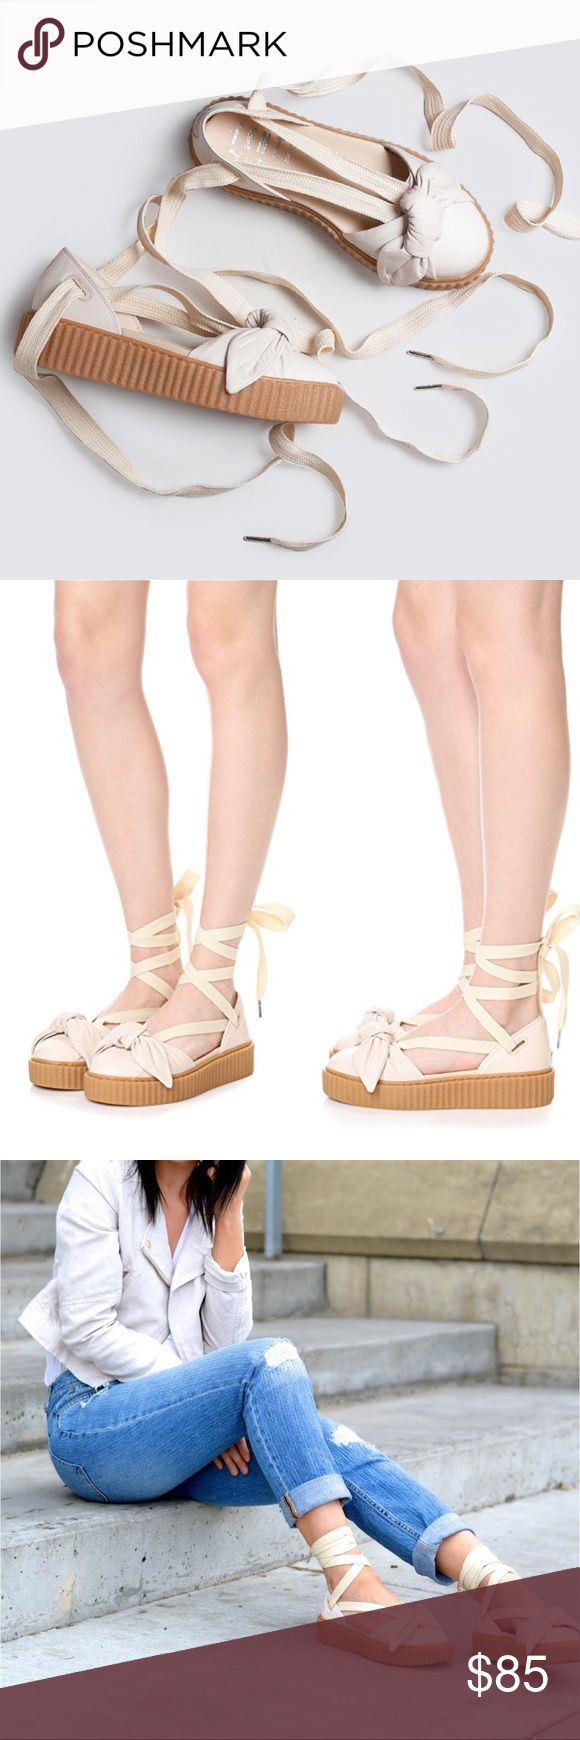 "Puma Fenty x Rihanna Nude Bow Creeper Sandal From Rihanna's FENTY x PUMA collection. A ridged, rubber platform provides a sturdy lift to these soft leather PUMA sandals. A knotted bow adds touch of feminine style. Wide lace-up ties. Rubber sole.  Measurements ▫️Heel: 1 ½"" ▫️Platform: 1 ¼"" Puma Shoes Sandals"